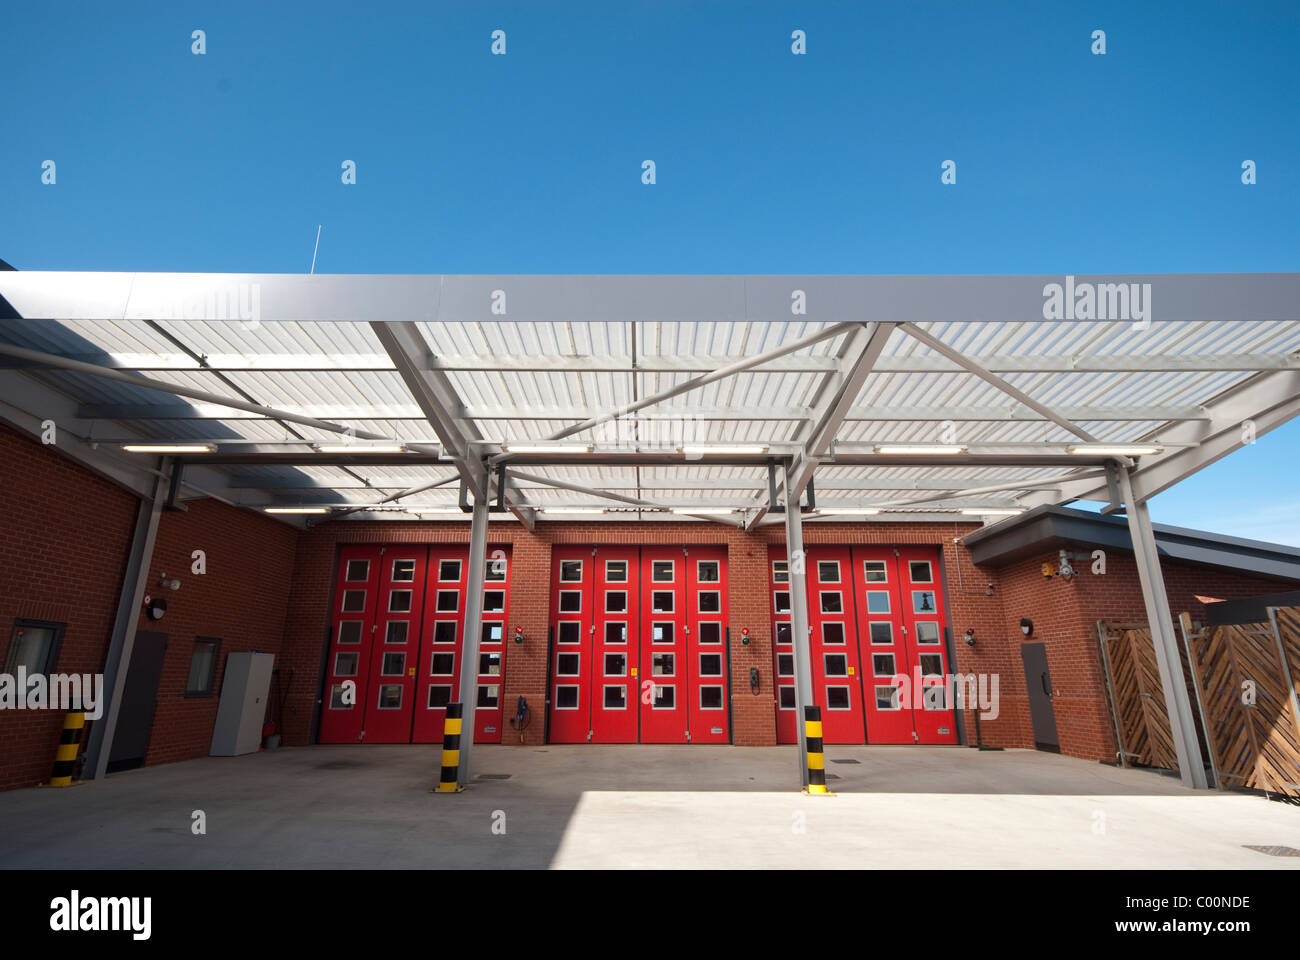 Marshes End Fire Station, Dorset Fire and Rescue Service, Poole fire engine exit doors Stock Photo